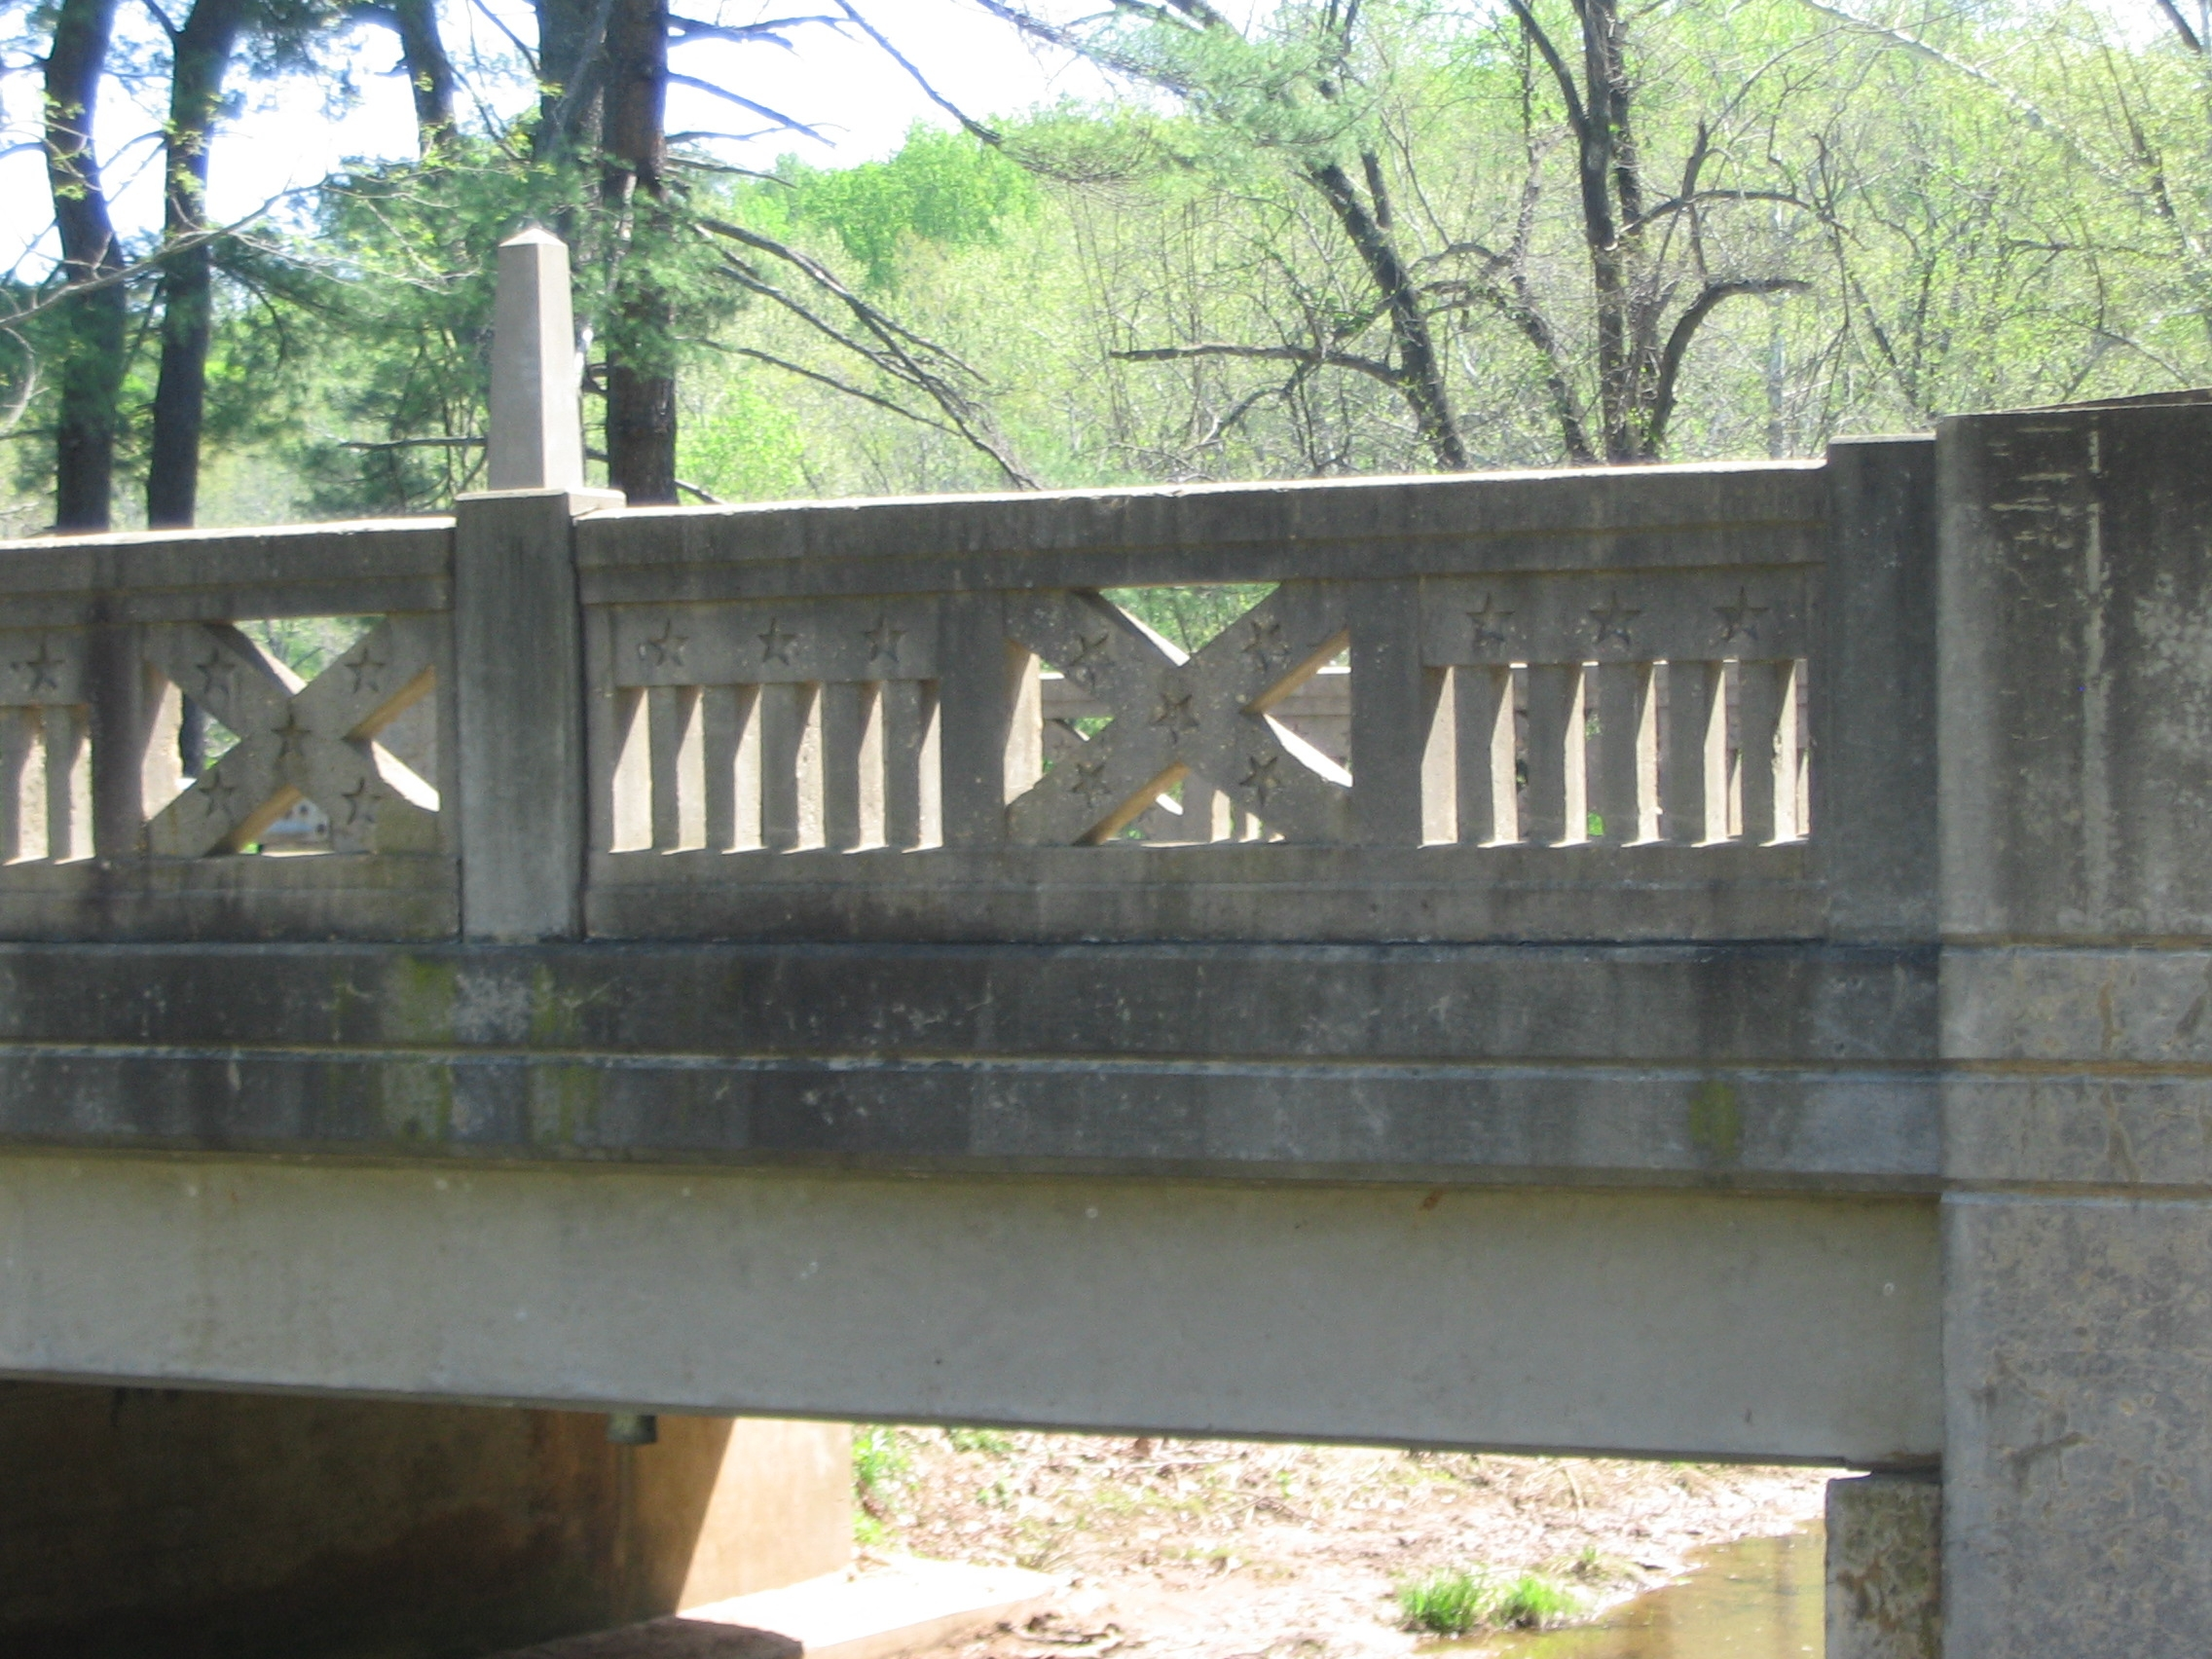 Detail of Bridge Railing